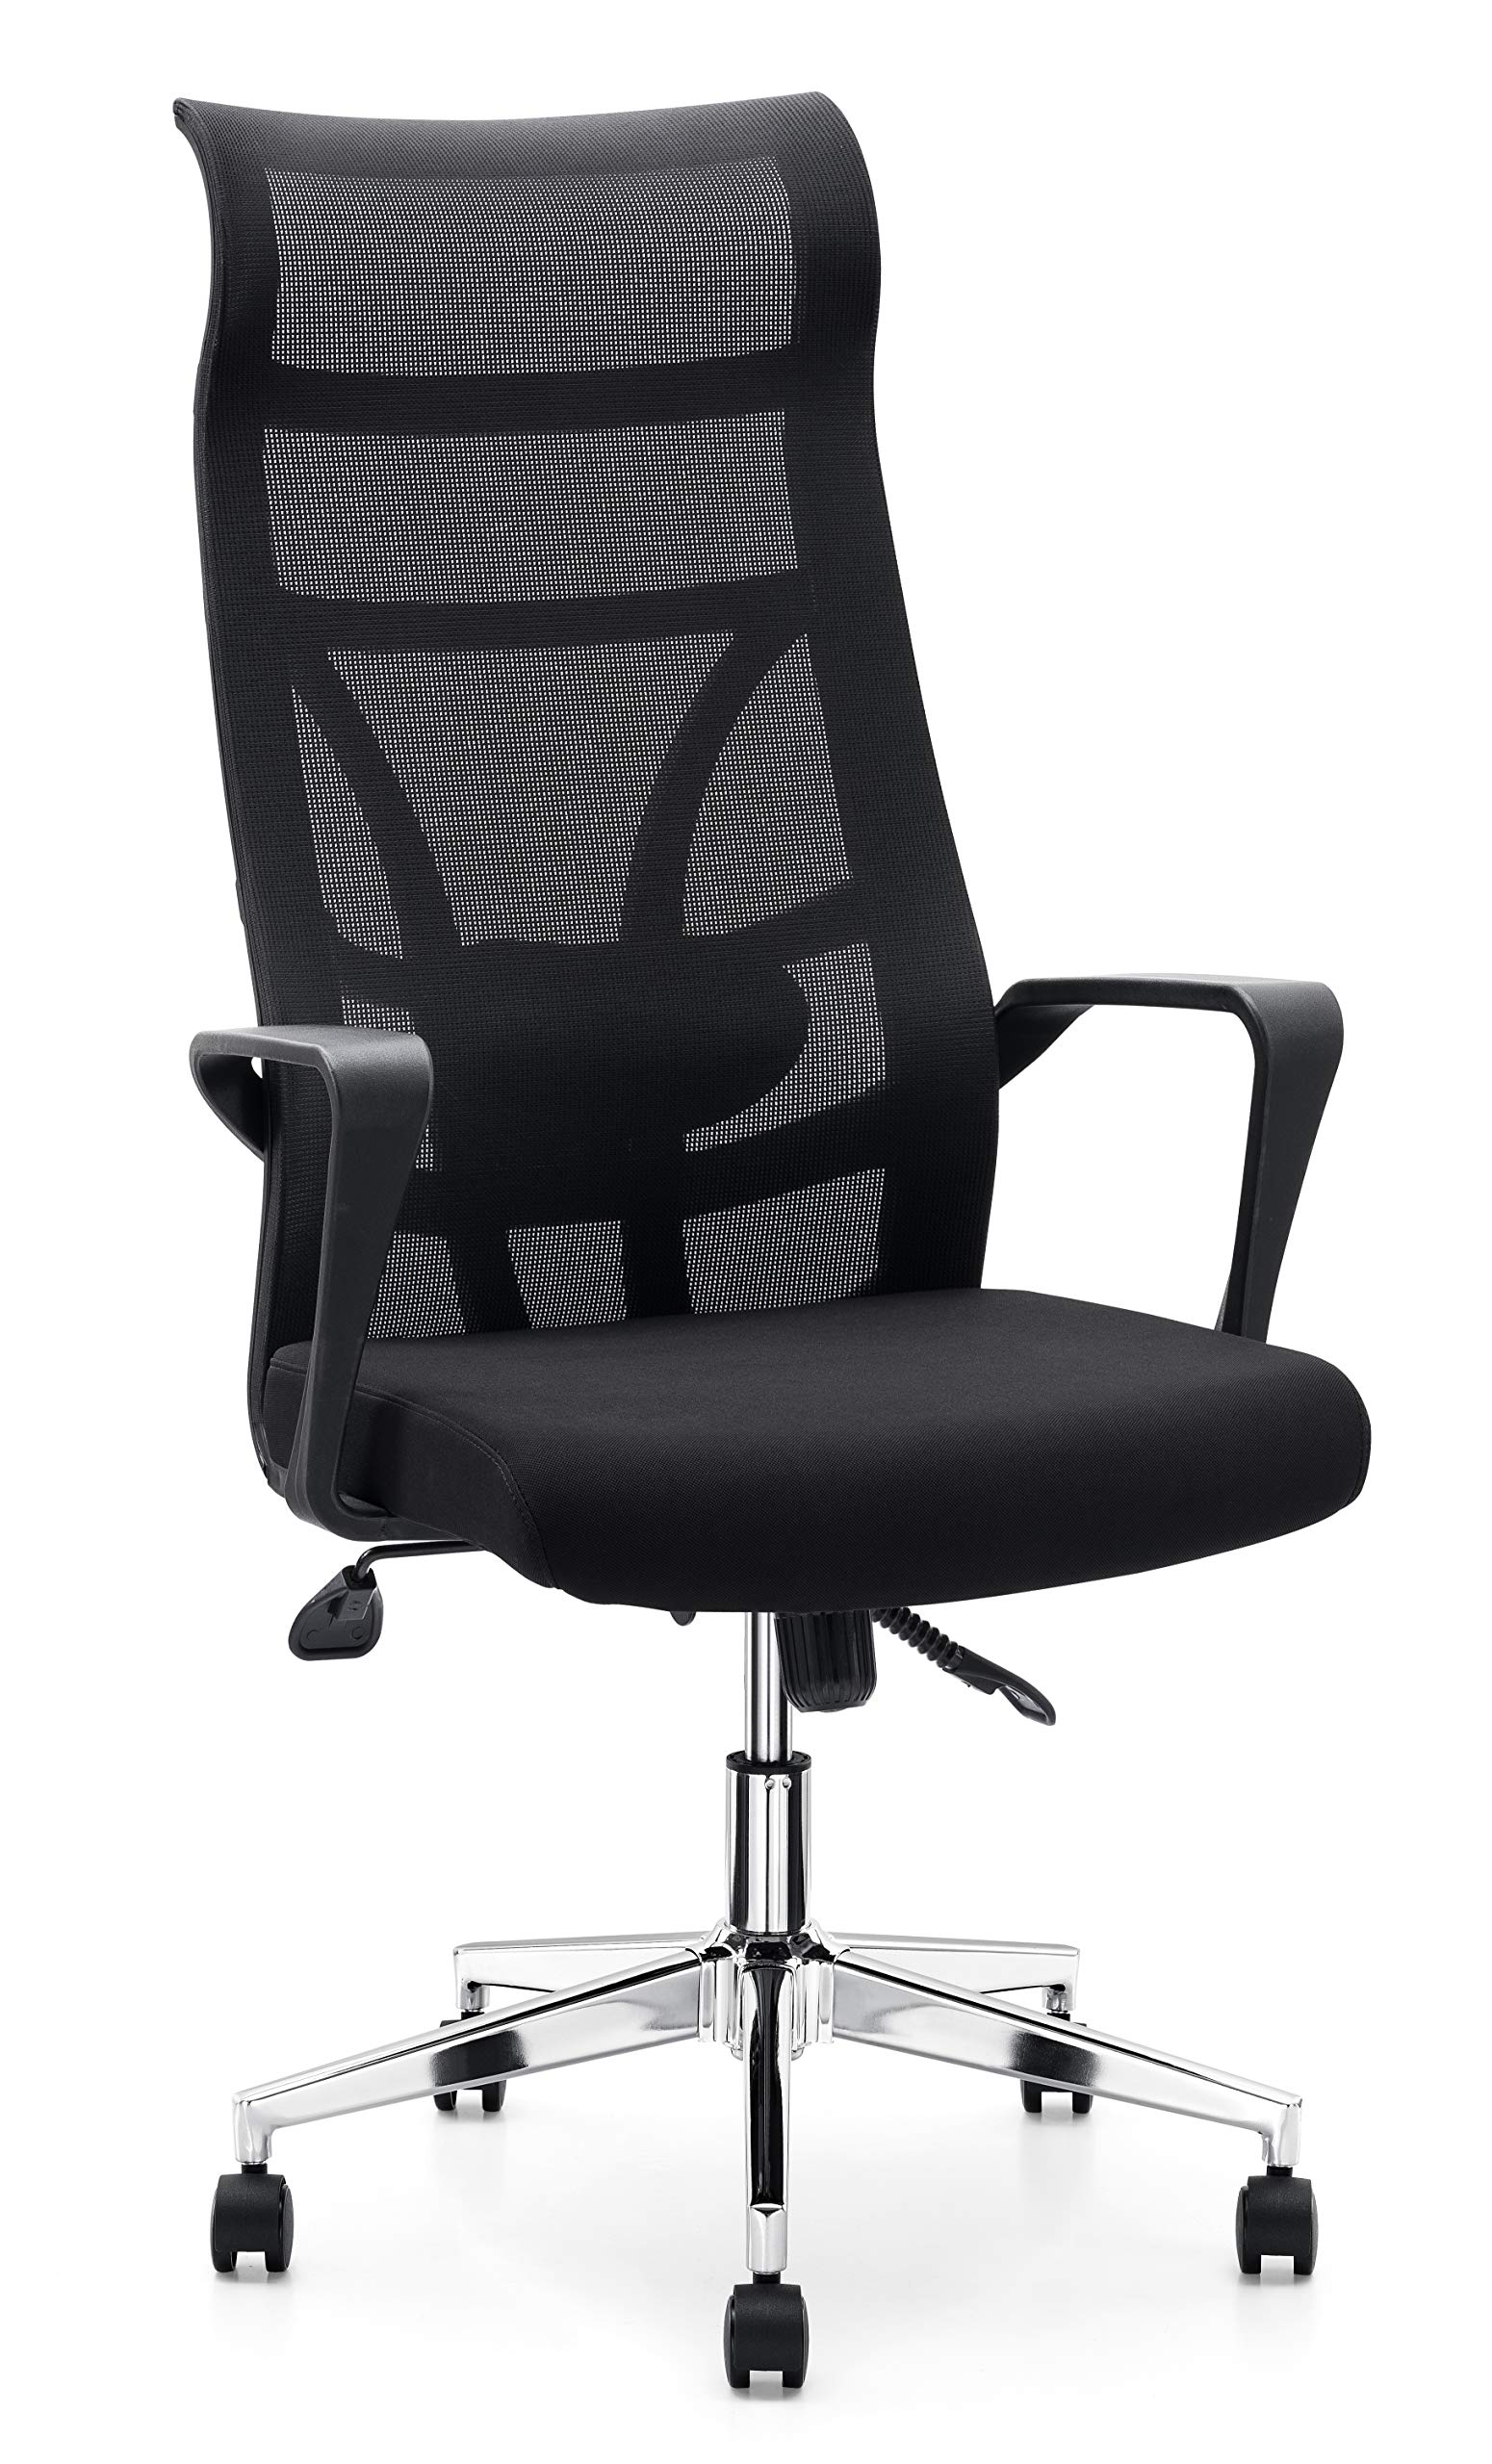 Allguest Executive Office High Back Elastic Mesh Chair - Black Premium Quality High-Back Office Chair - High-Density Foam Cover Chair by Allguest